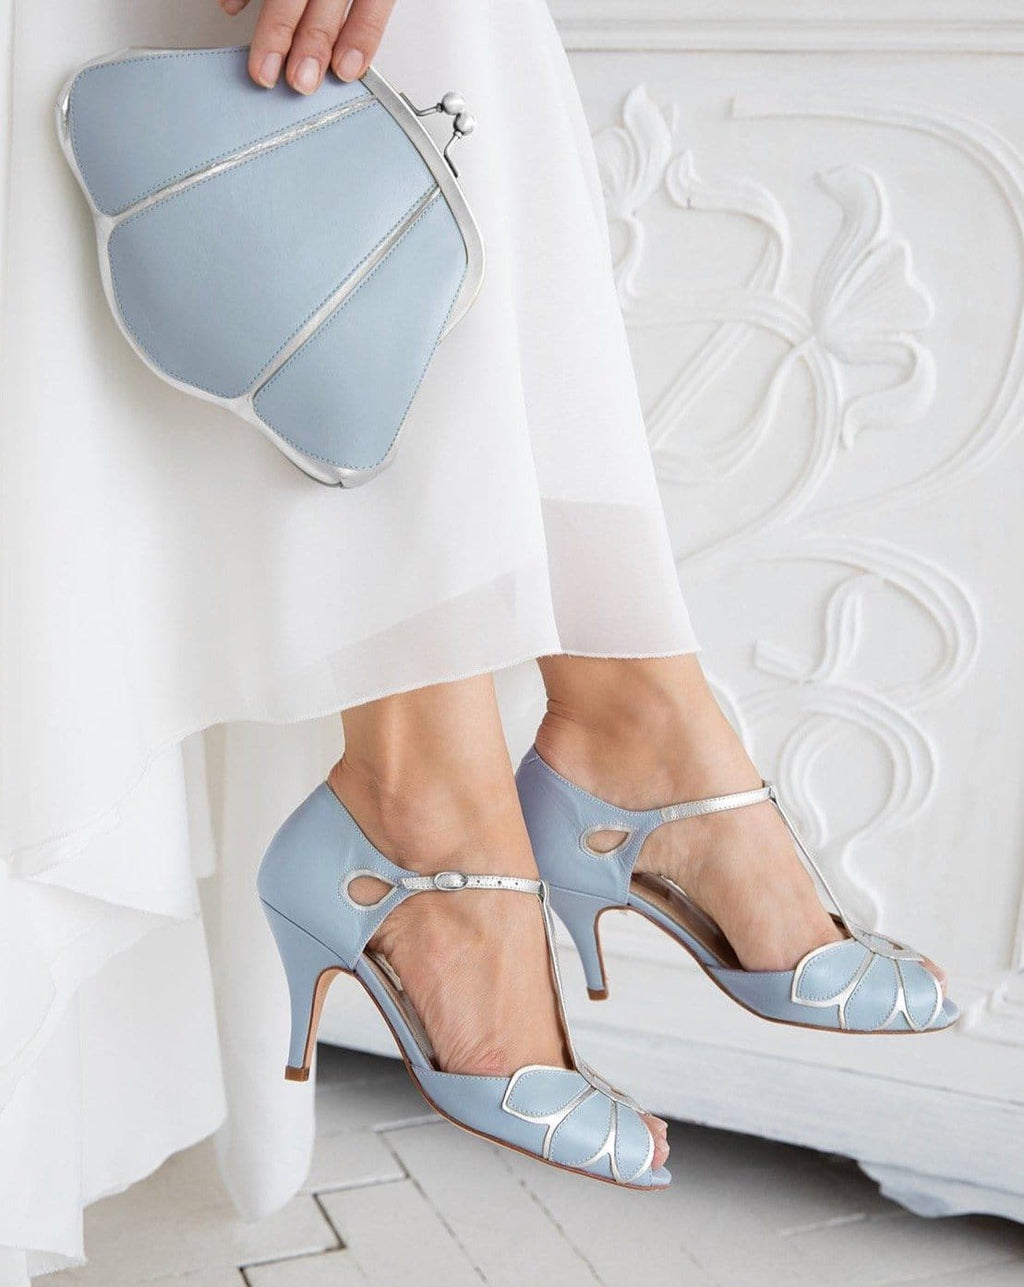 Mimosa Blue Ladies Shoes Rachel Simpson